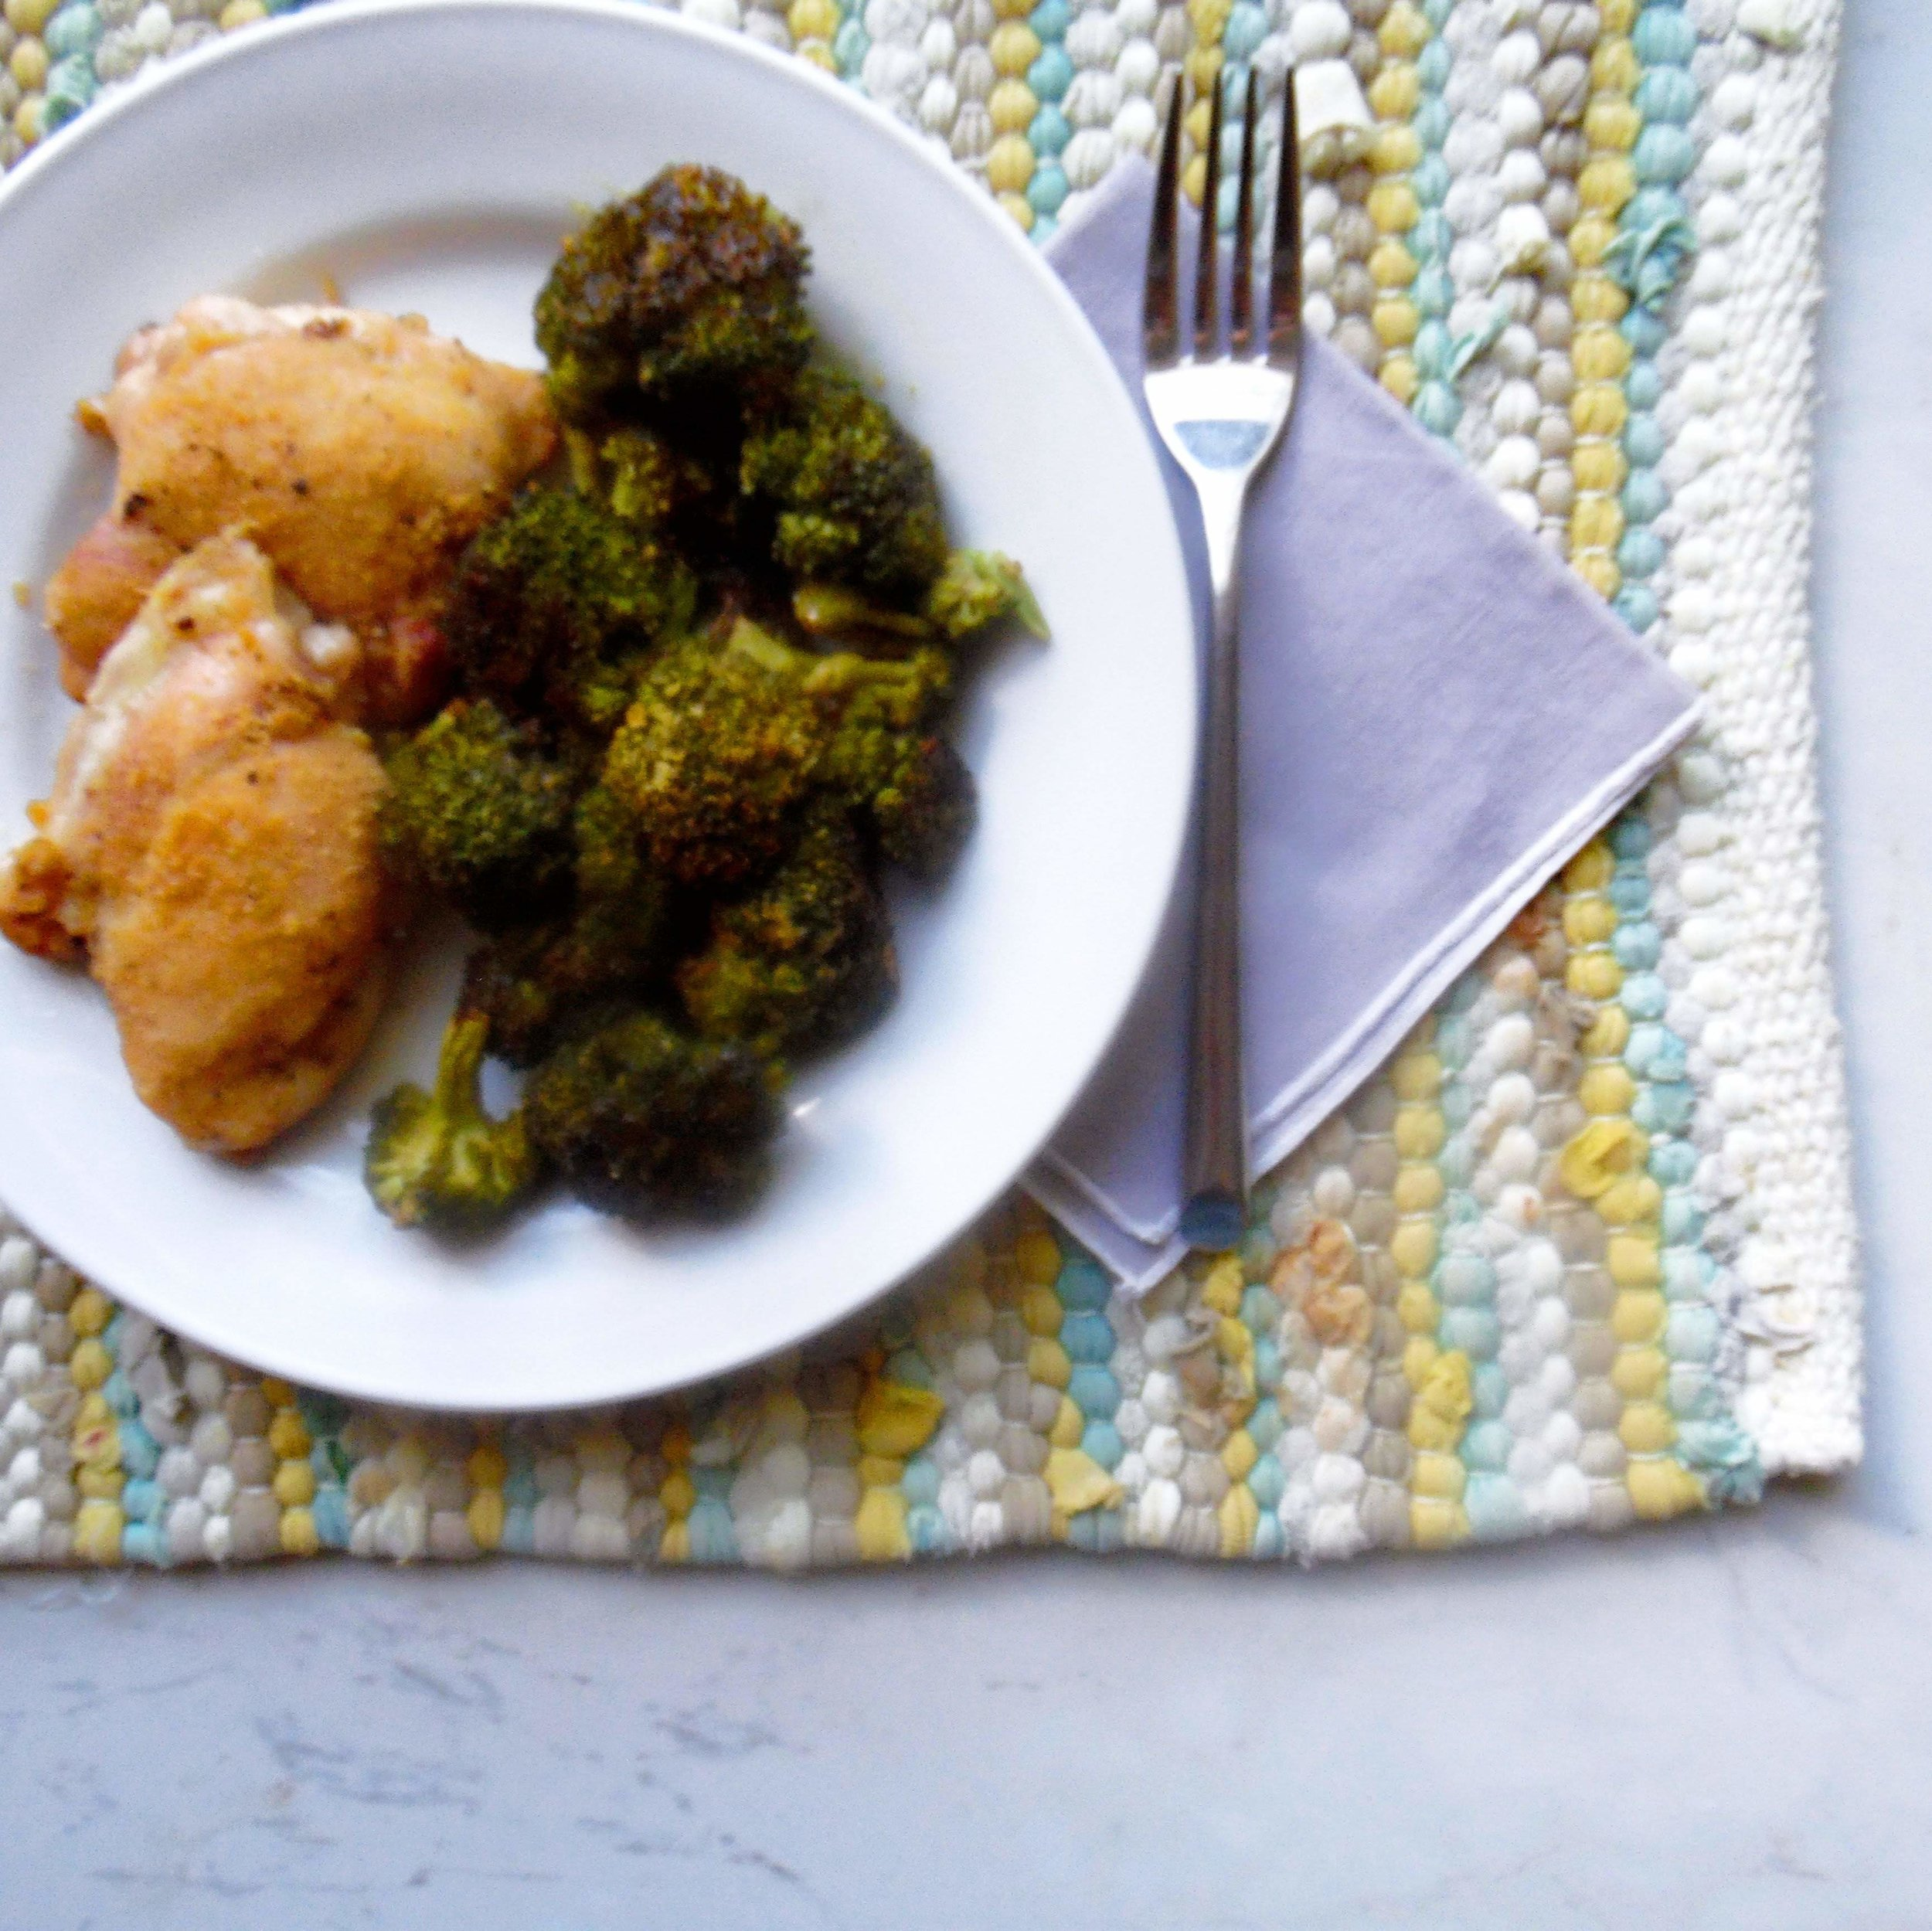 The cheesy, dairy free broccoli will make for a fun week night meal. Paired with these sheet pan chicken thighs will be a total hit.